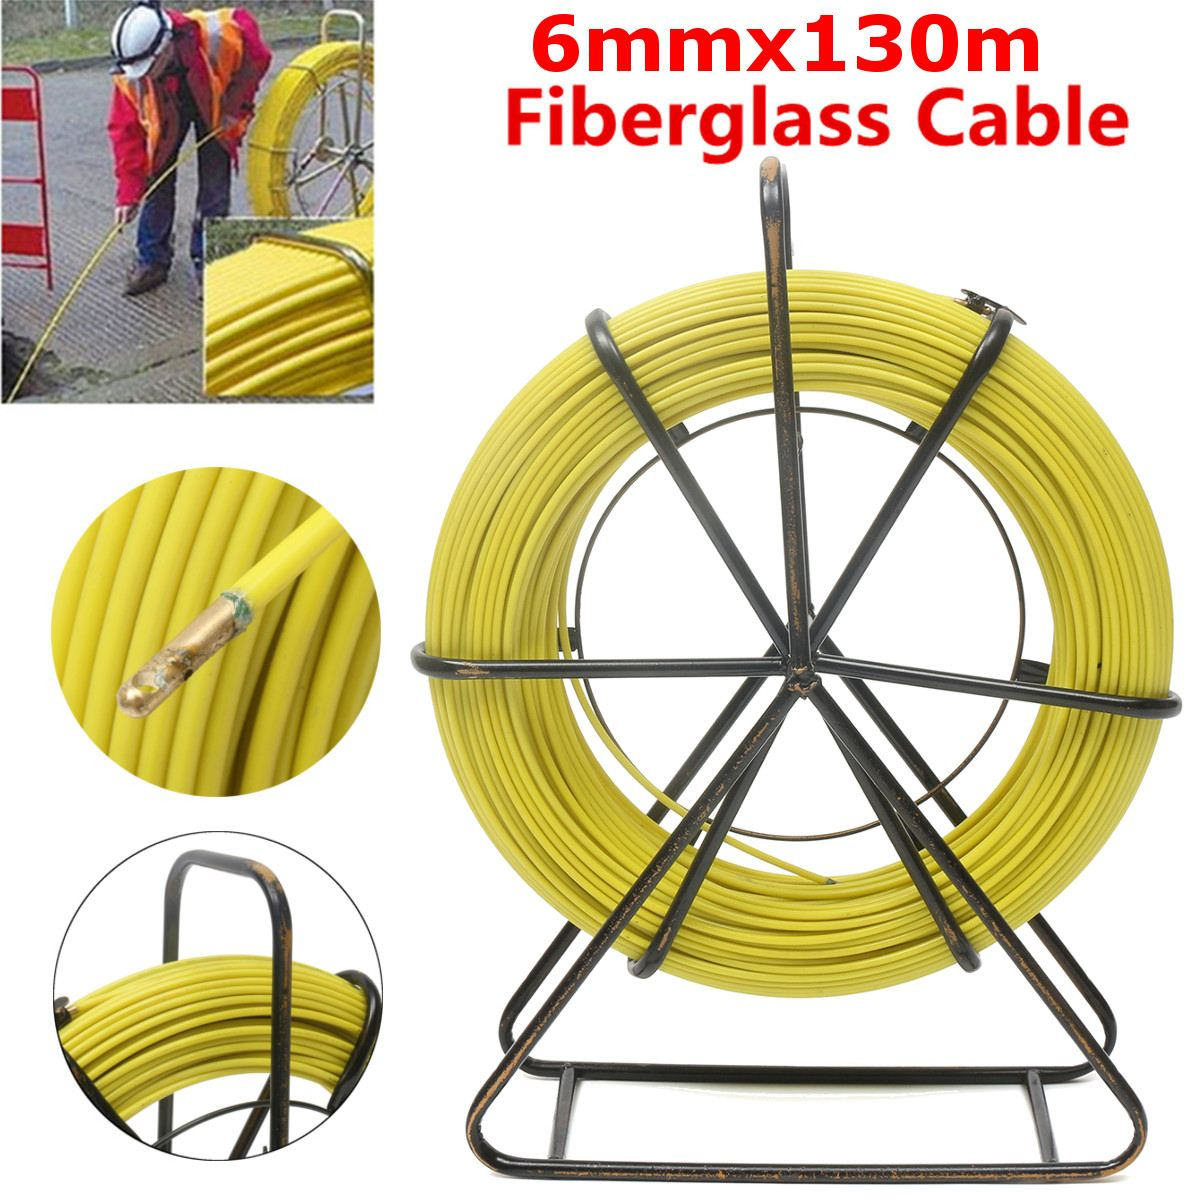 6mm 130M Fiberglass Wire Cable Running Rod Snake Fish Rodder Puller Flexi Lead Electric Fiberglass Wire Cable Running Rod Puller6mm 130M Fiberglass Wire Cable Running Rod Snake Fish Rodder Puller Flexi Lead Electric Fiberglass Wire Cable Running Rod Puller